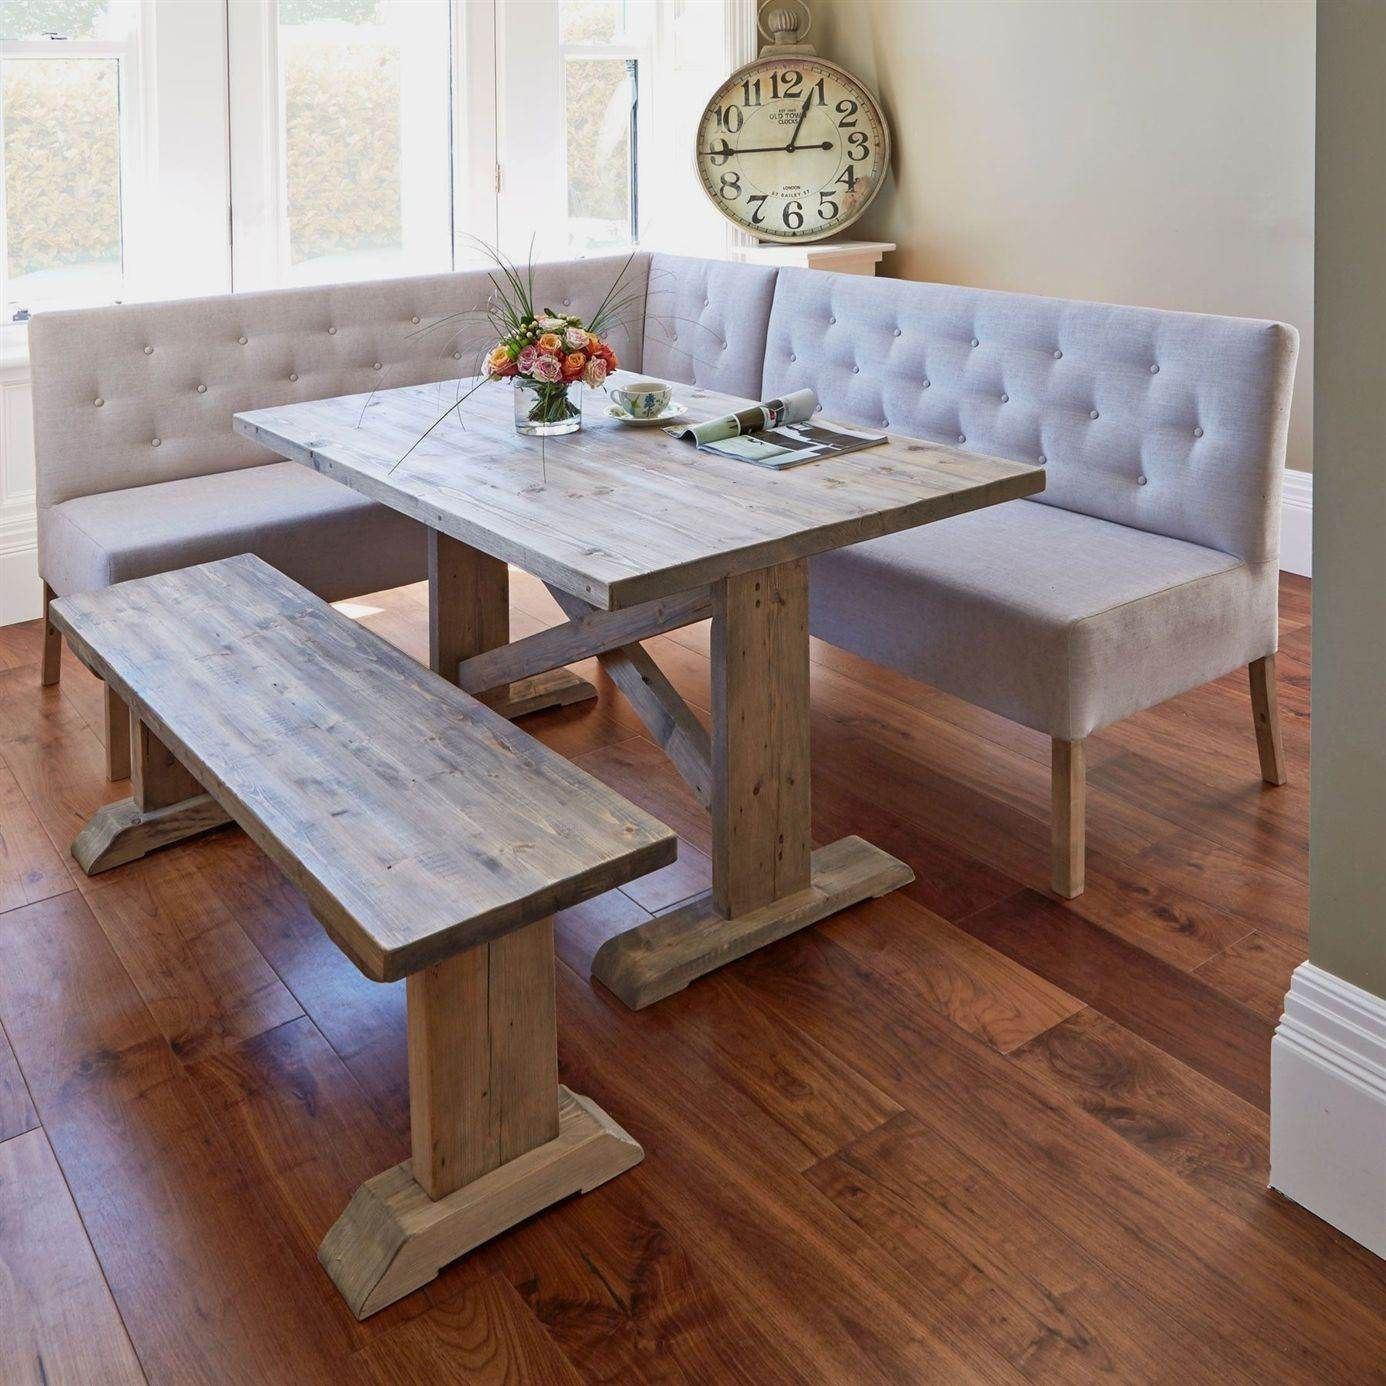 Dining Room Set With Booth Seating In 2020 Corner Dining Table Dining Room Small Kitchen Table Settings